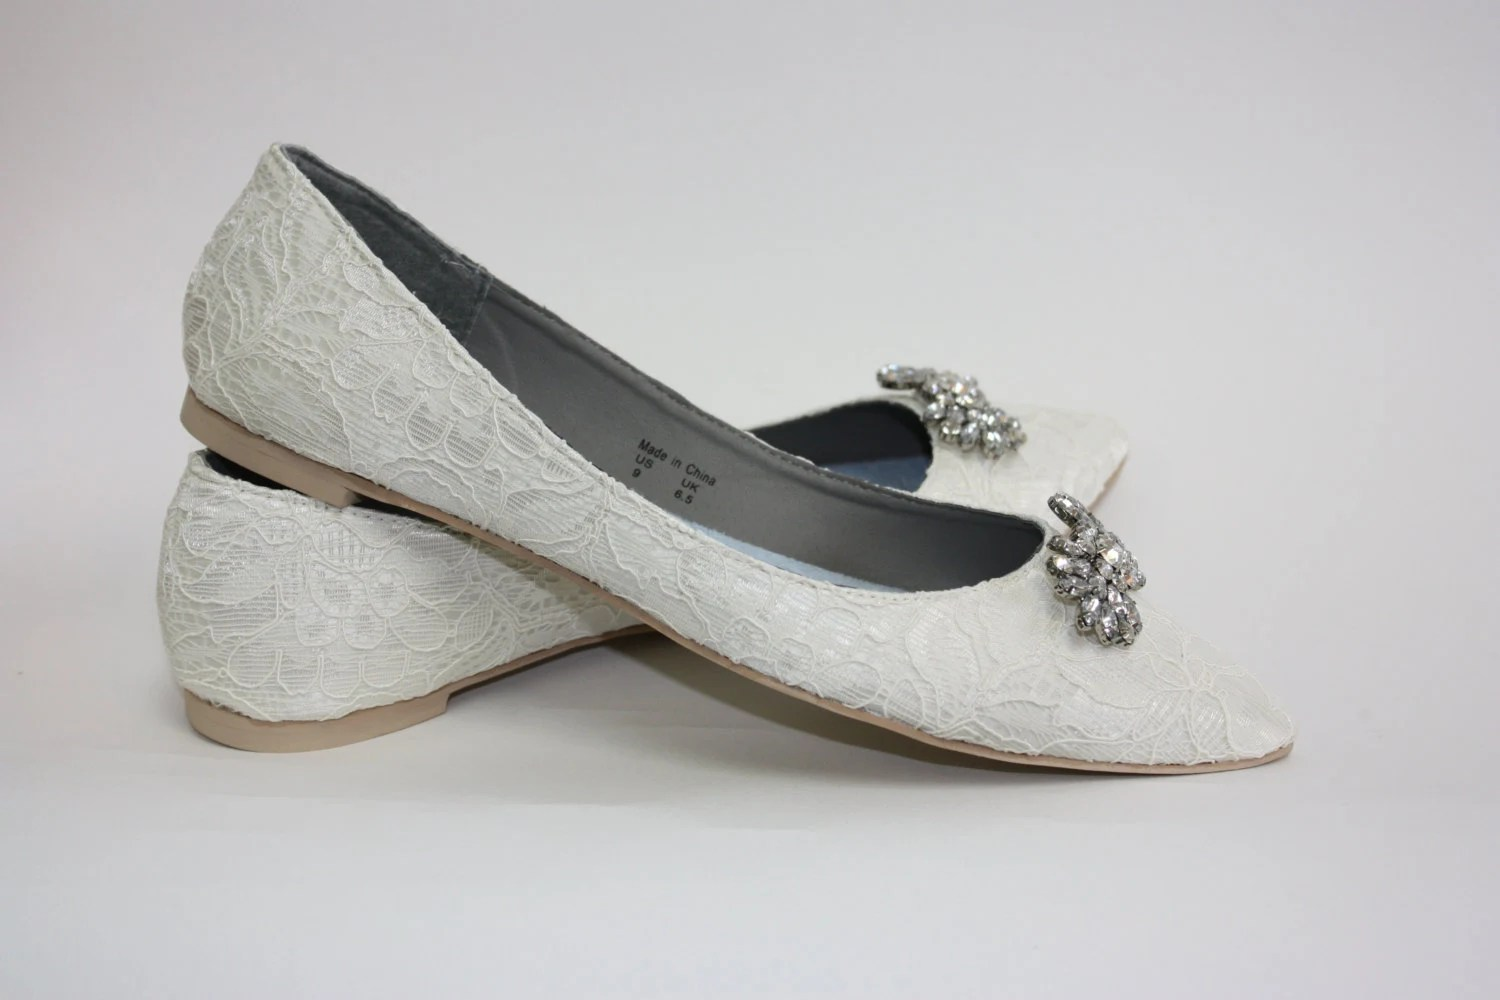 flat shoes wedding slippers Wedding Shoes Lace Flats Lace Wedding Shoes Crystals Wedding Flats Shoes Crystals Downton Abby Vintage Shoe Parisxox